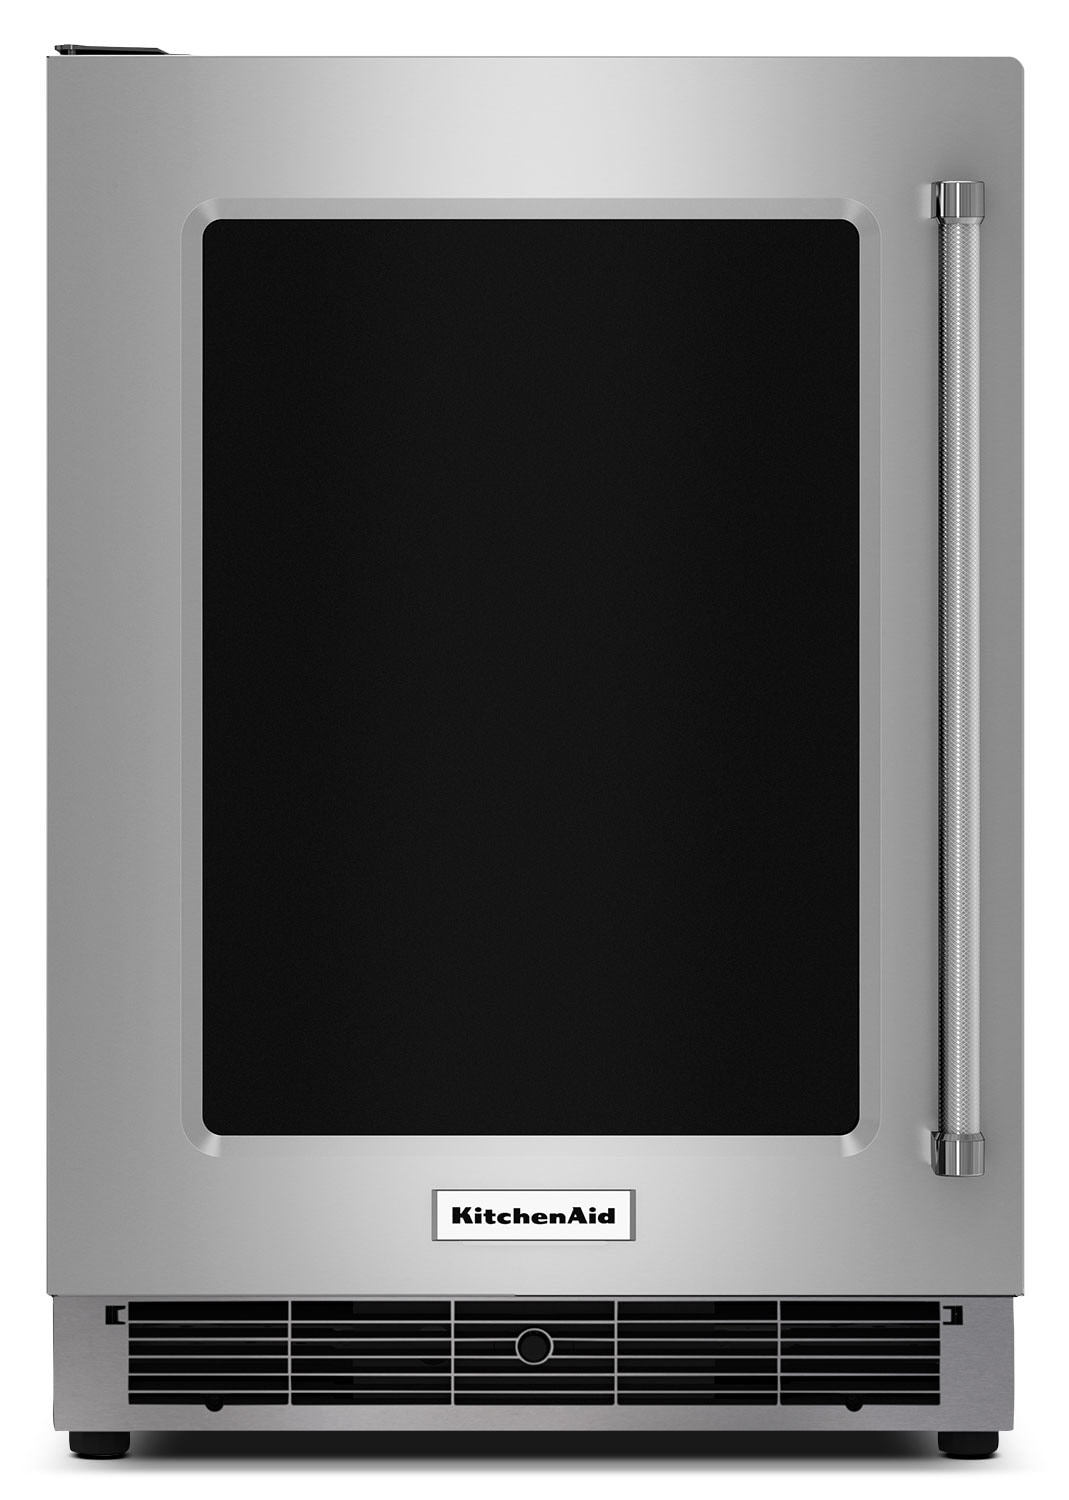 Refrigerators and Freezers - KitchenAid 5.1 Cu. Ft. Undercounter Refrigerator with Left-Door Swing – KURL304ESS